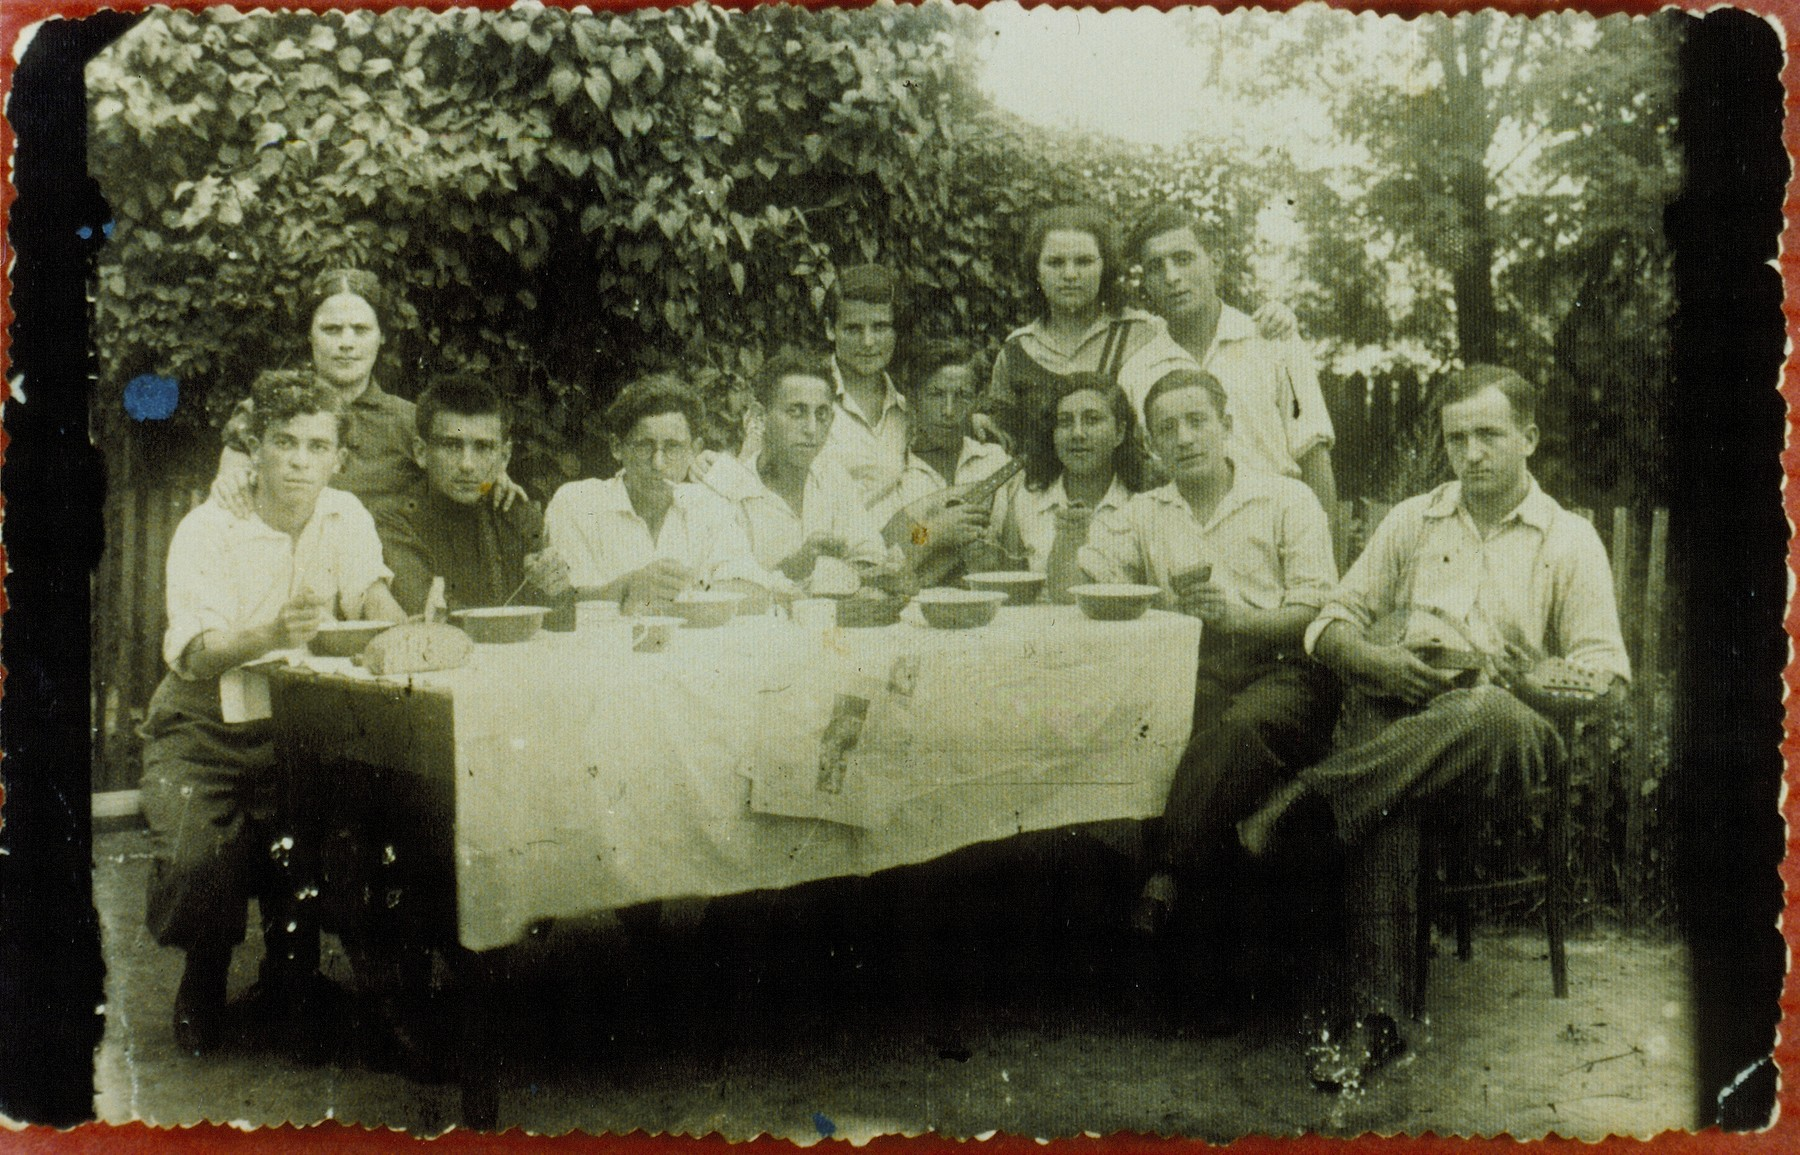 Members of a Hehalutz hachsharah gather around a picnic table set with bowls prior to their immigration to Palestine.  Matle Shuster (standing third from right) immigrated to Palestine.  The fate of the others is unknown.